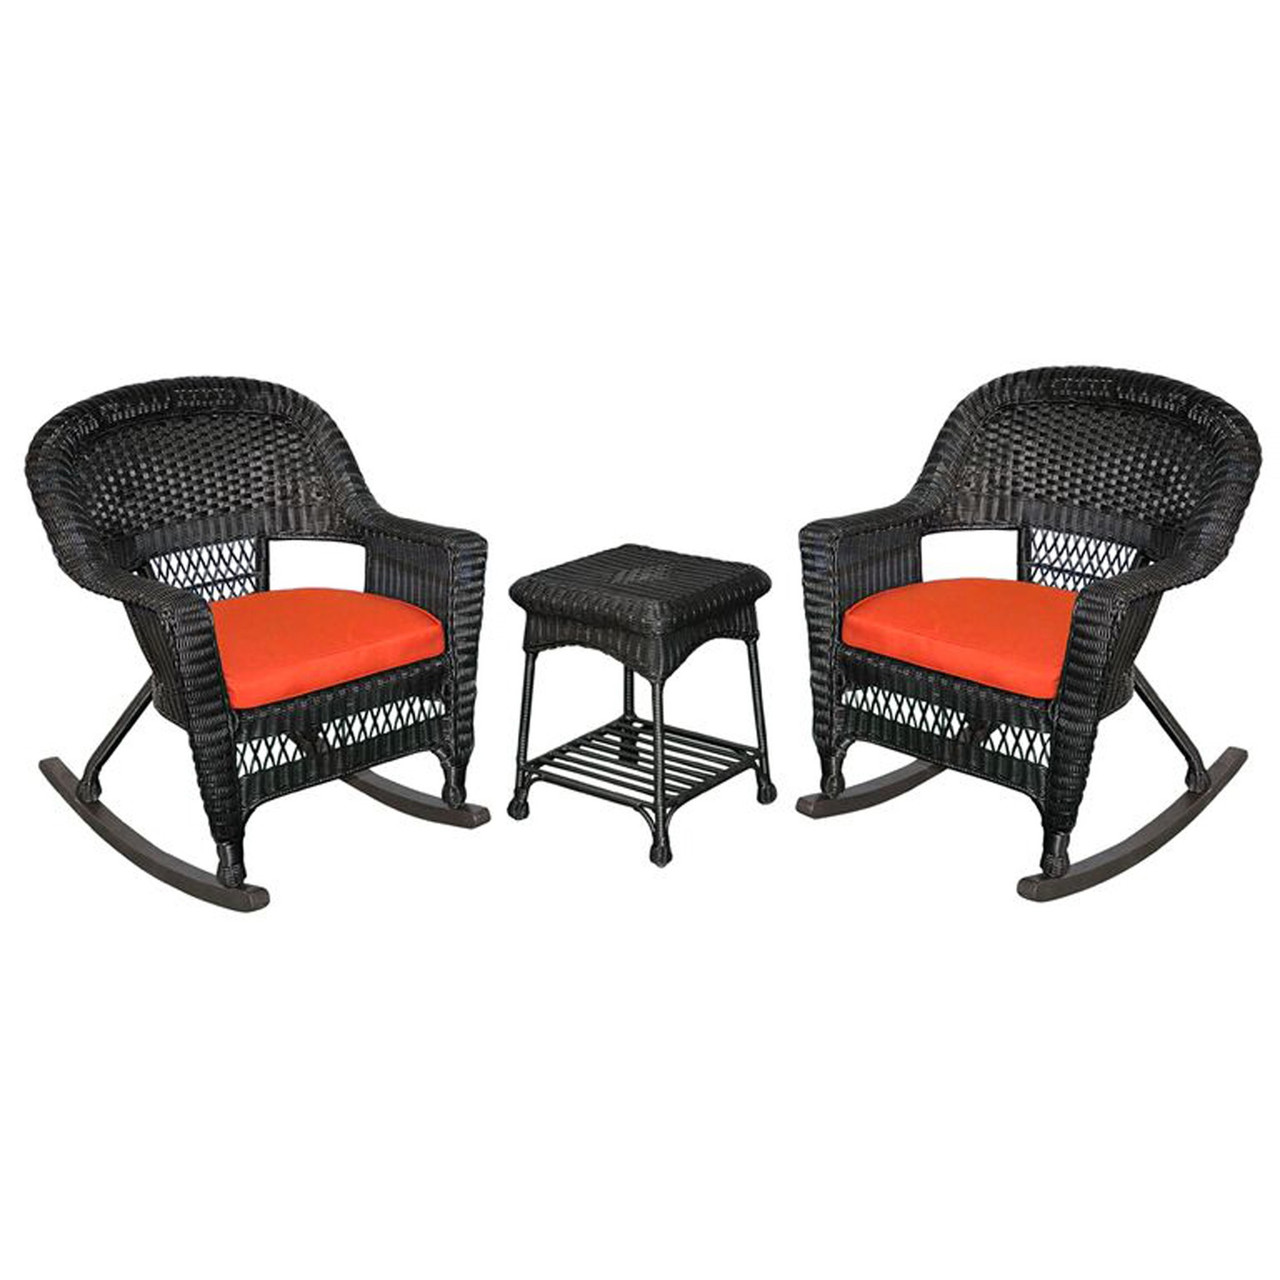 Black Wicker Rocking Chairs 3 Piece Tiana Black Resin Wicker Patio Rocker Chair Table Furniture Set Red Cushions 31556427